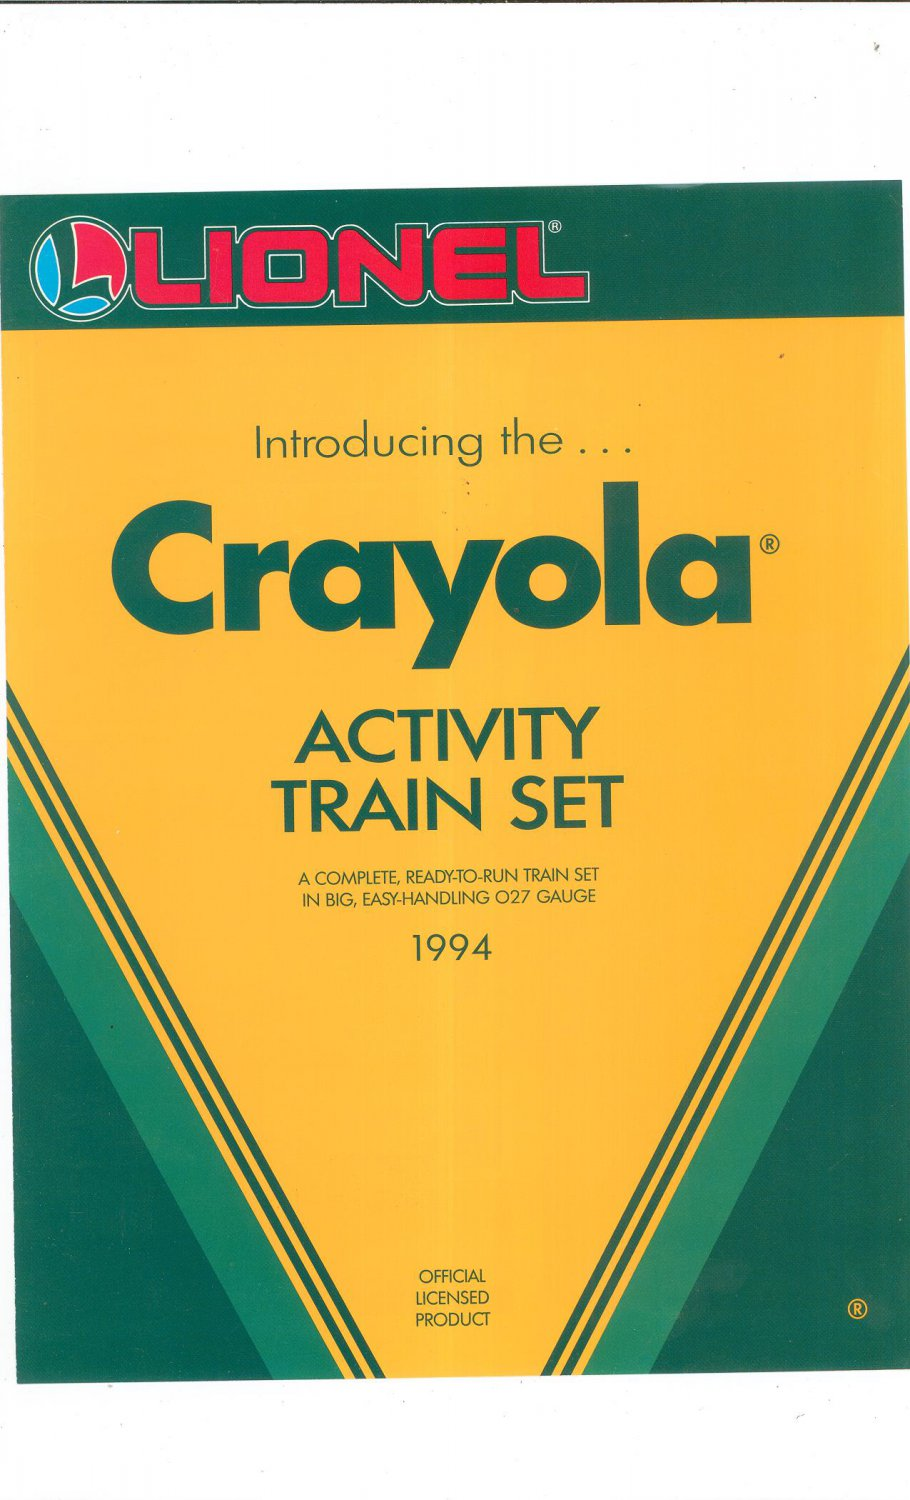 Lionel 1994 Introducing The Crayola Activity Train Set Brochure Not PDF Free Shipping Offer